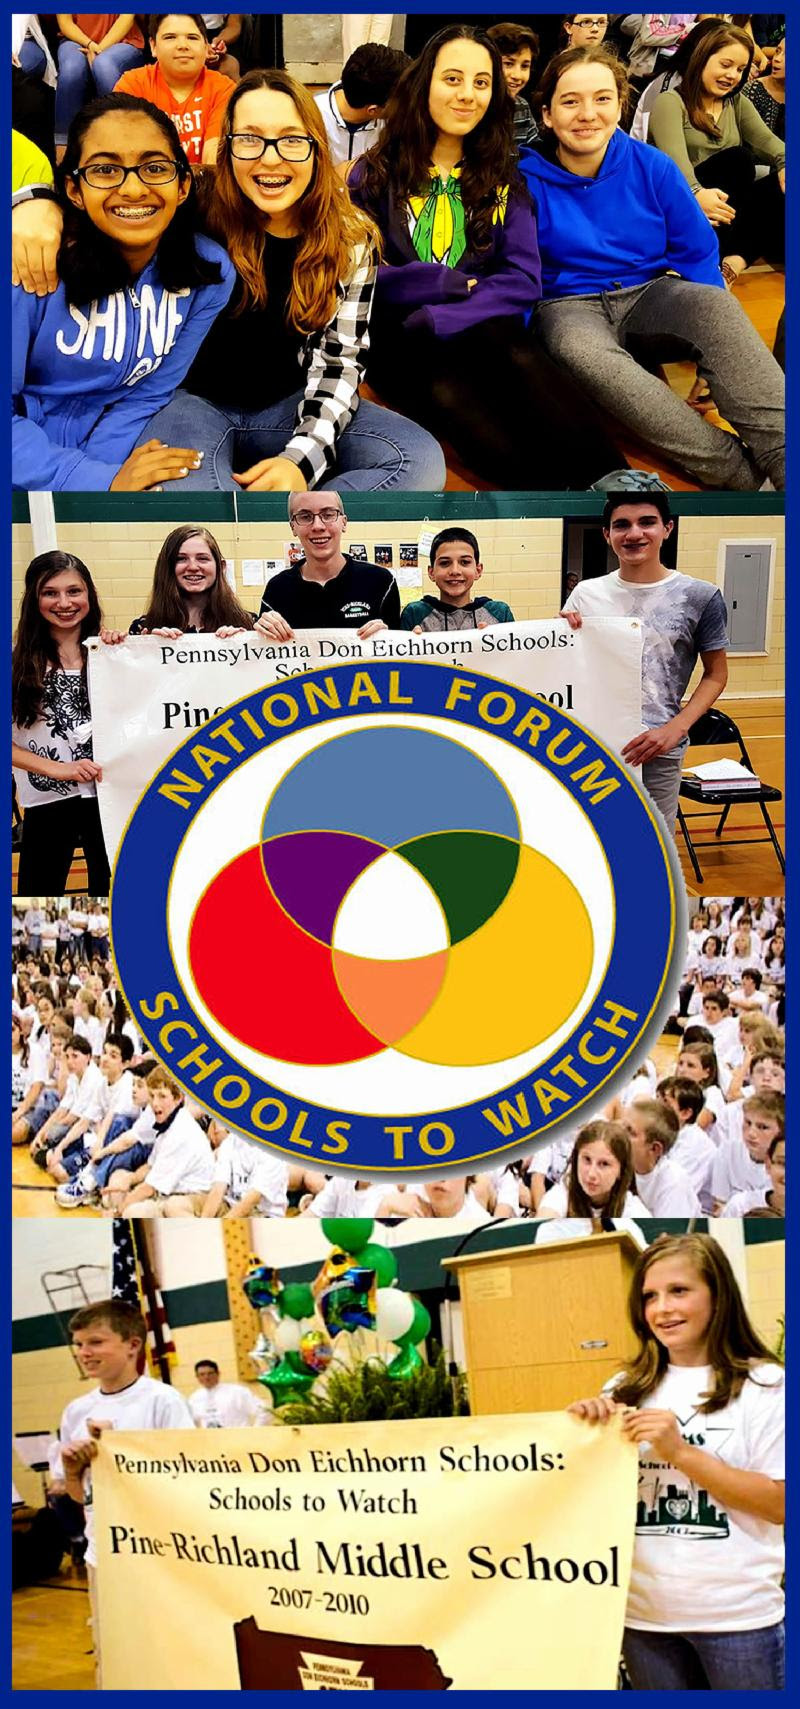 Previous Schools to Watch Recognition Programs at PRMS